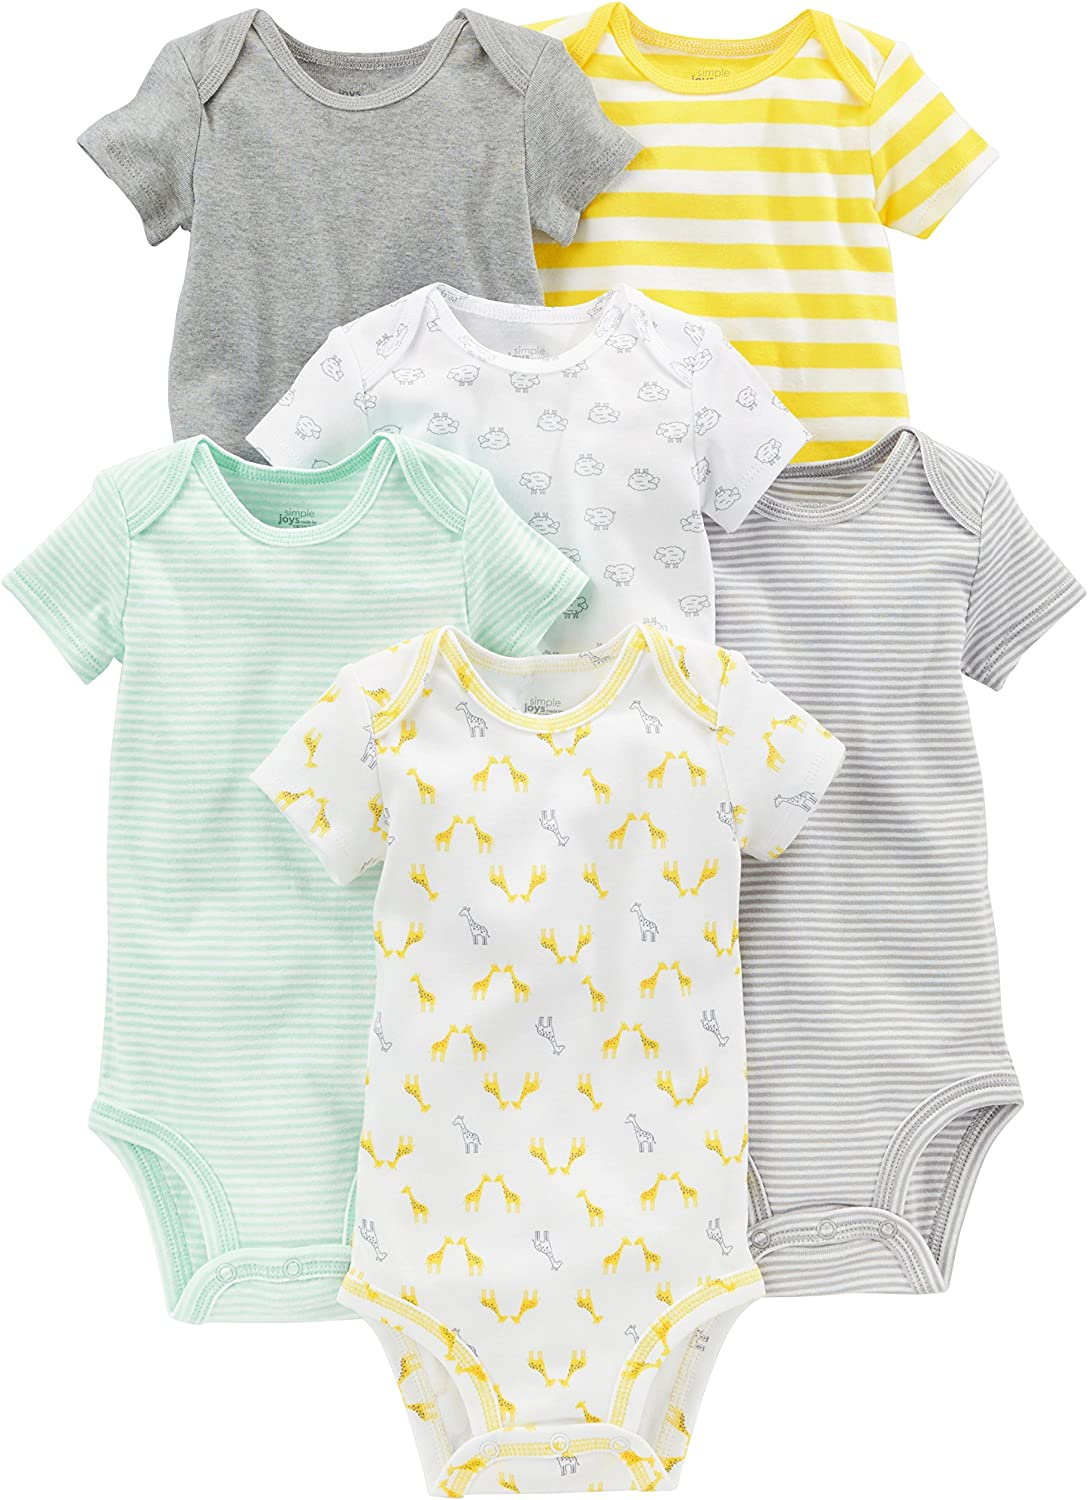 Simple Special price Joys by Carter's Baby 6-Pack Short-Sleeve Neutral Free shipping anywhere in the nation Bodysui